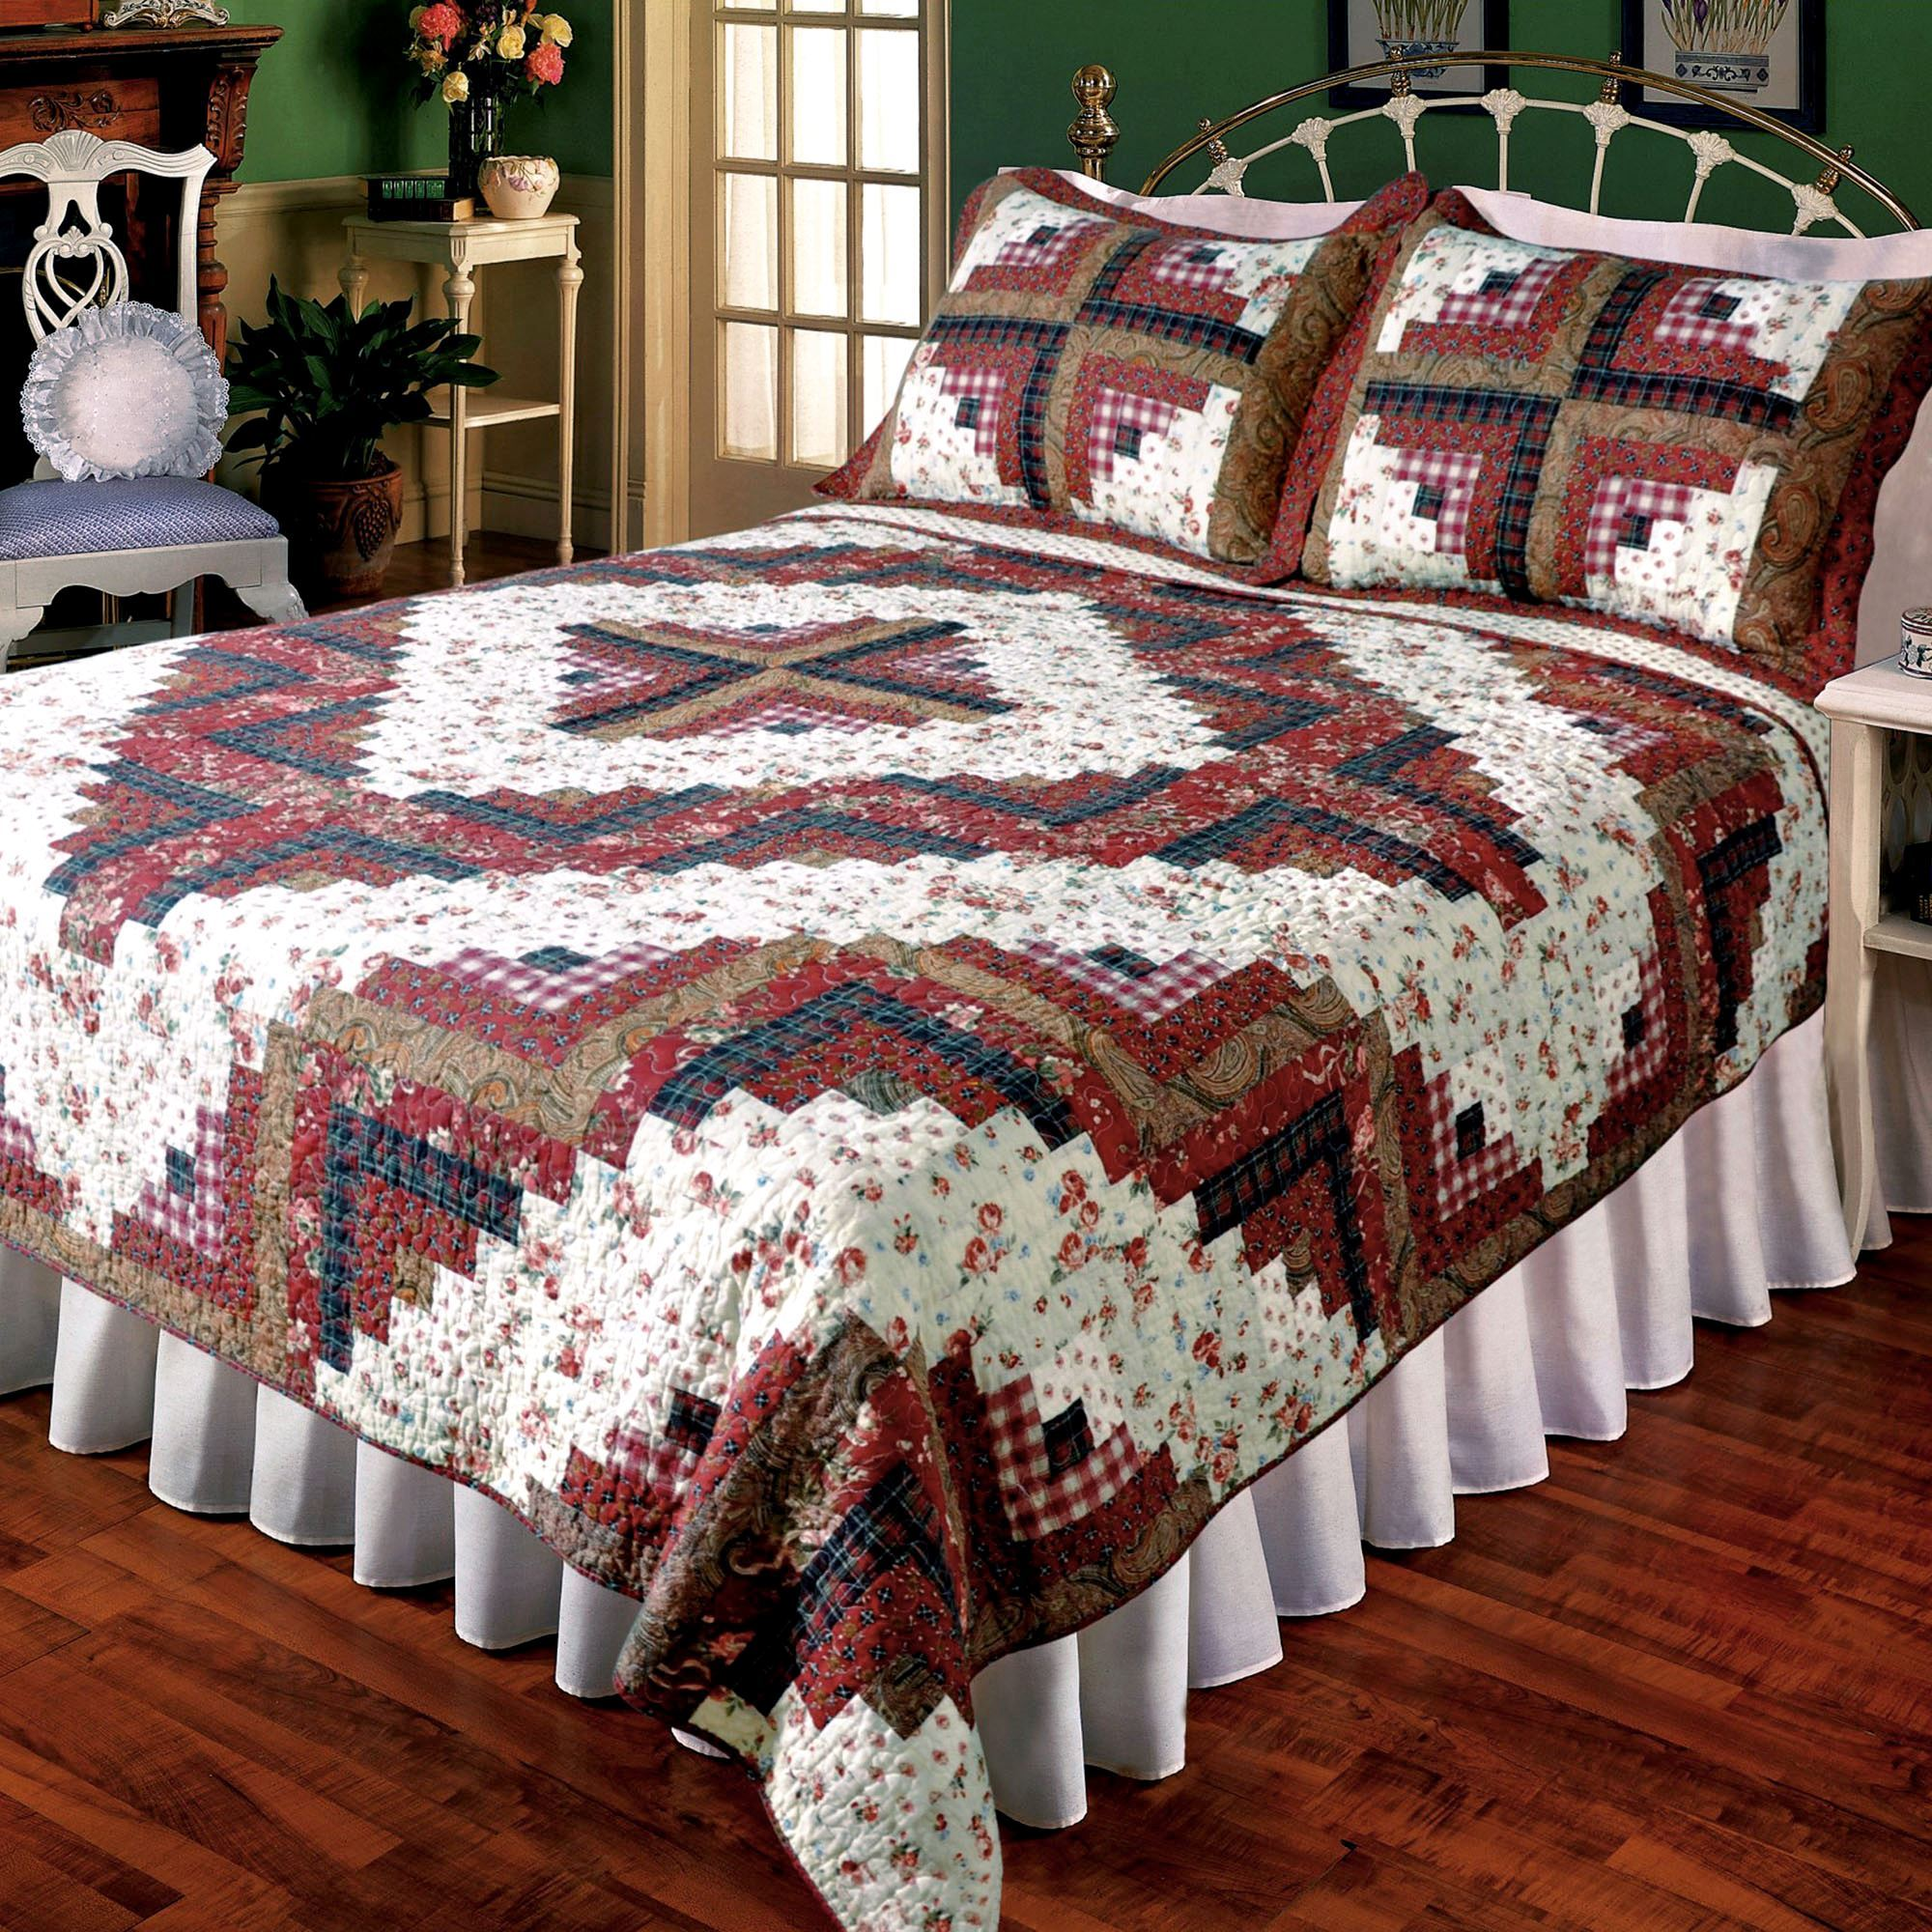 peak line comforter wire texas com alibaba pc barbed lodge horse cross luxury deals at western on praying cabin shopping get comforters cheap bedspread quotations find guides cowboy